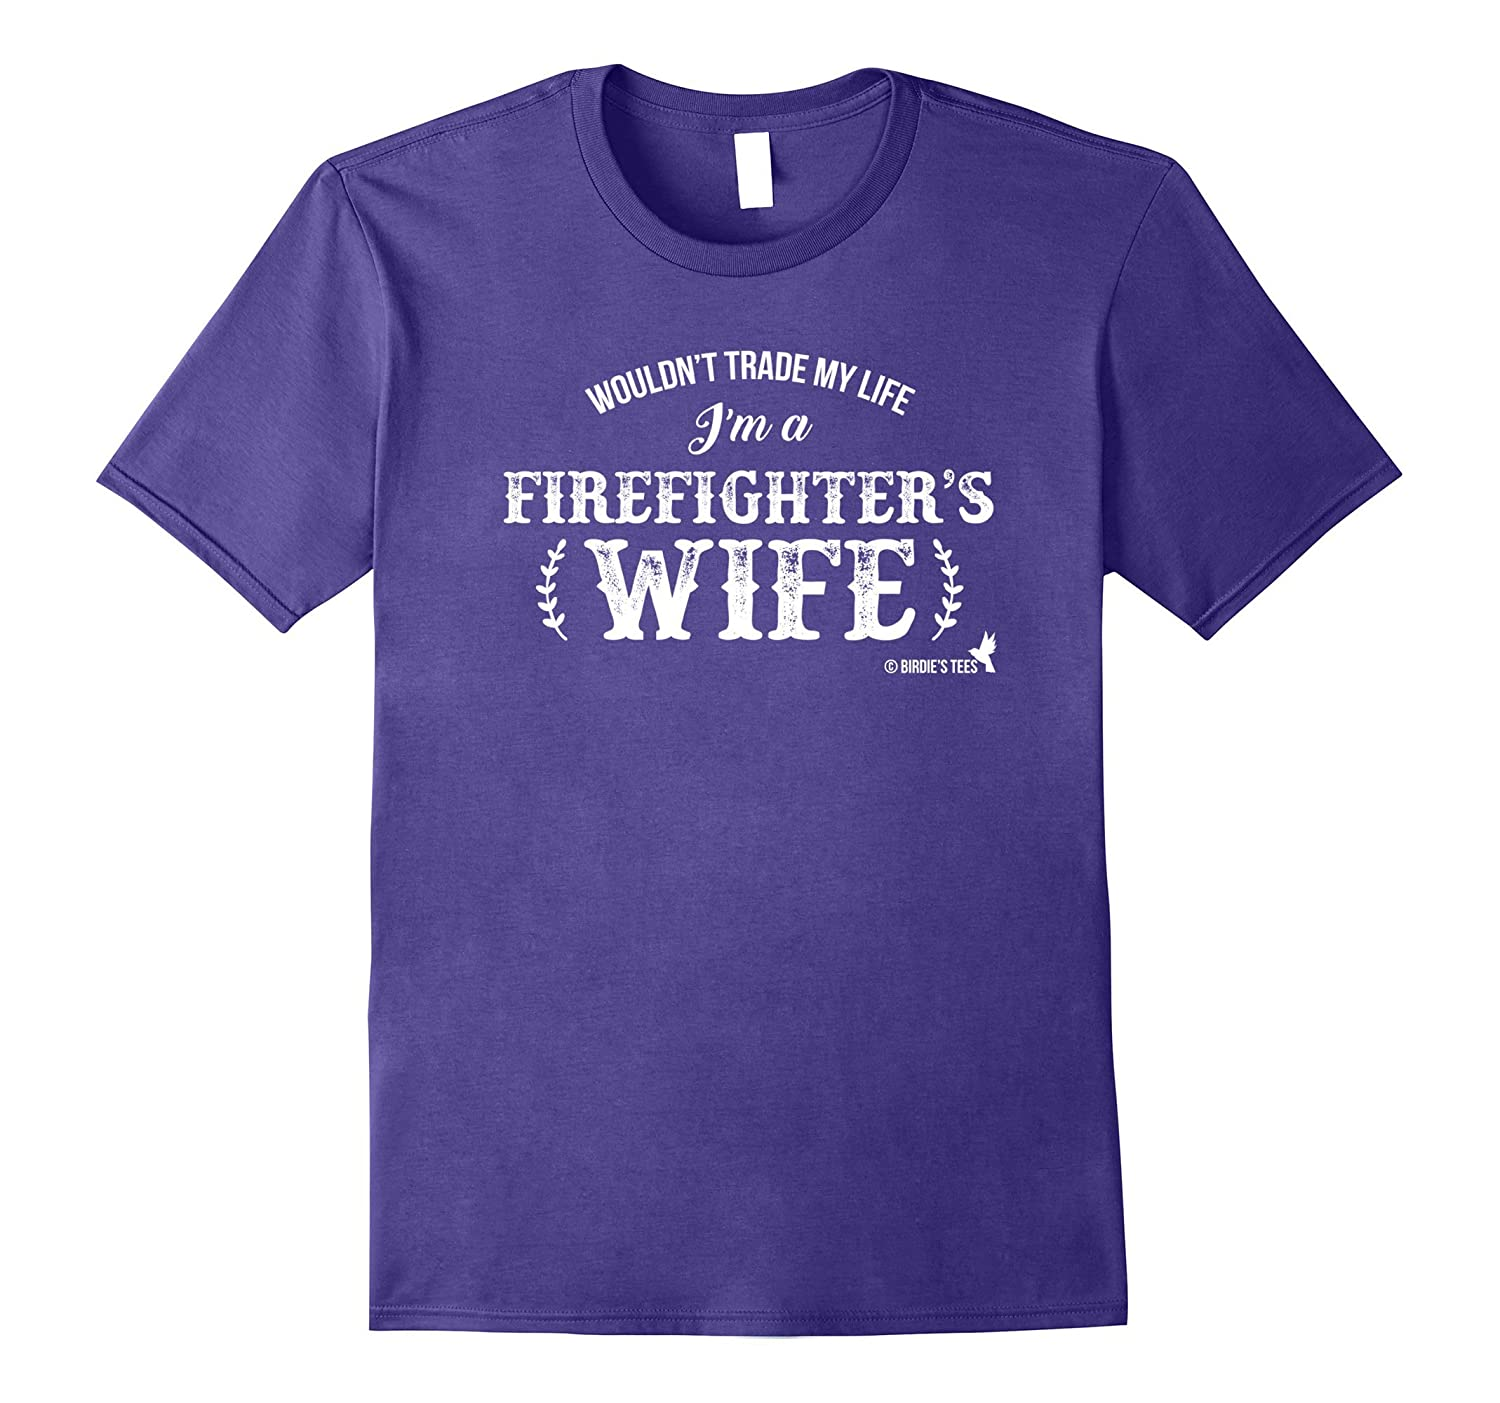 Firefighter Fireman Wife TShirt Wouldnt Trade My Life-TJ